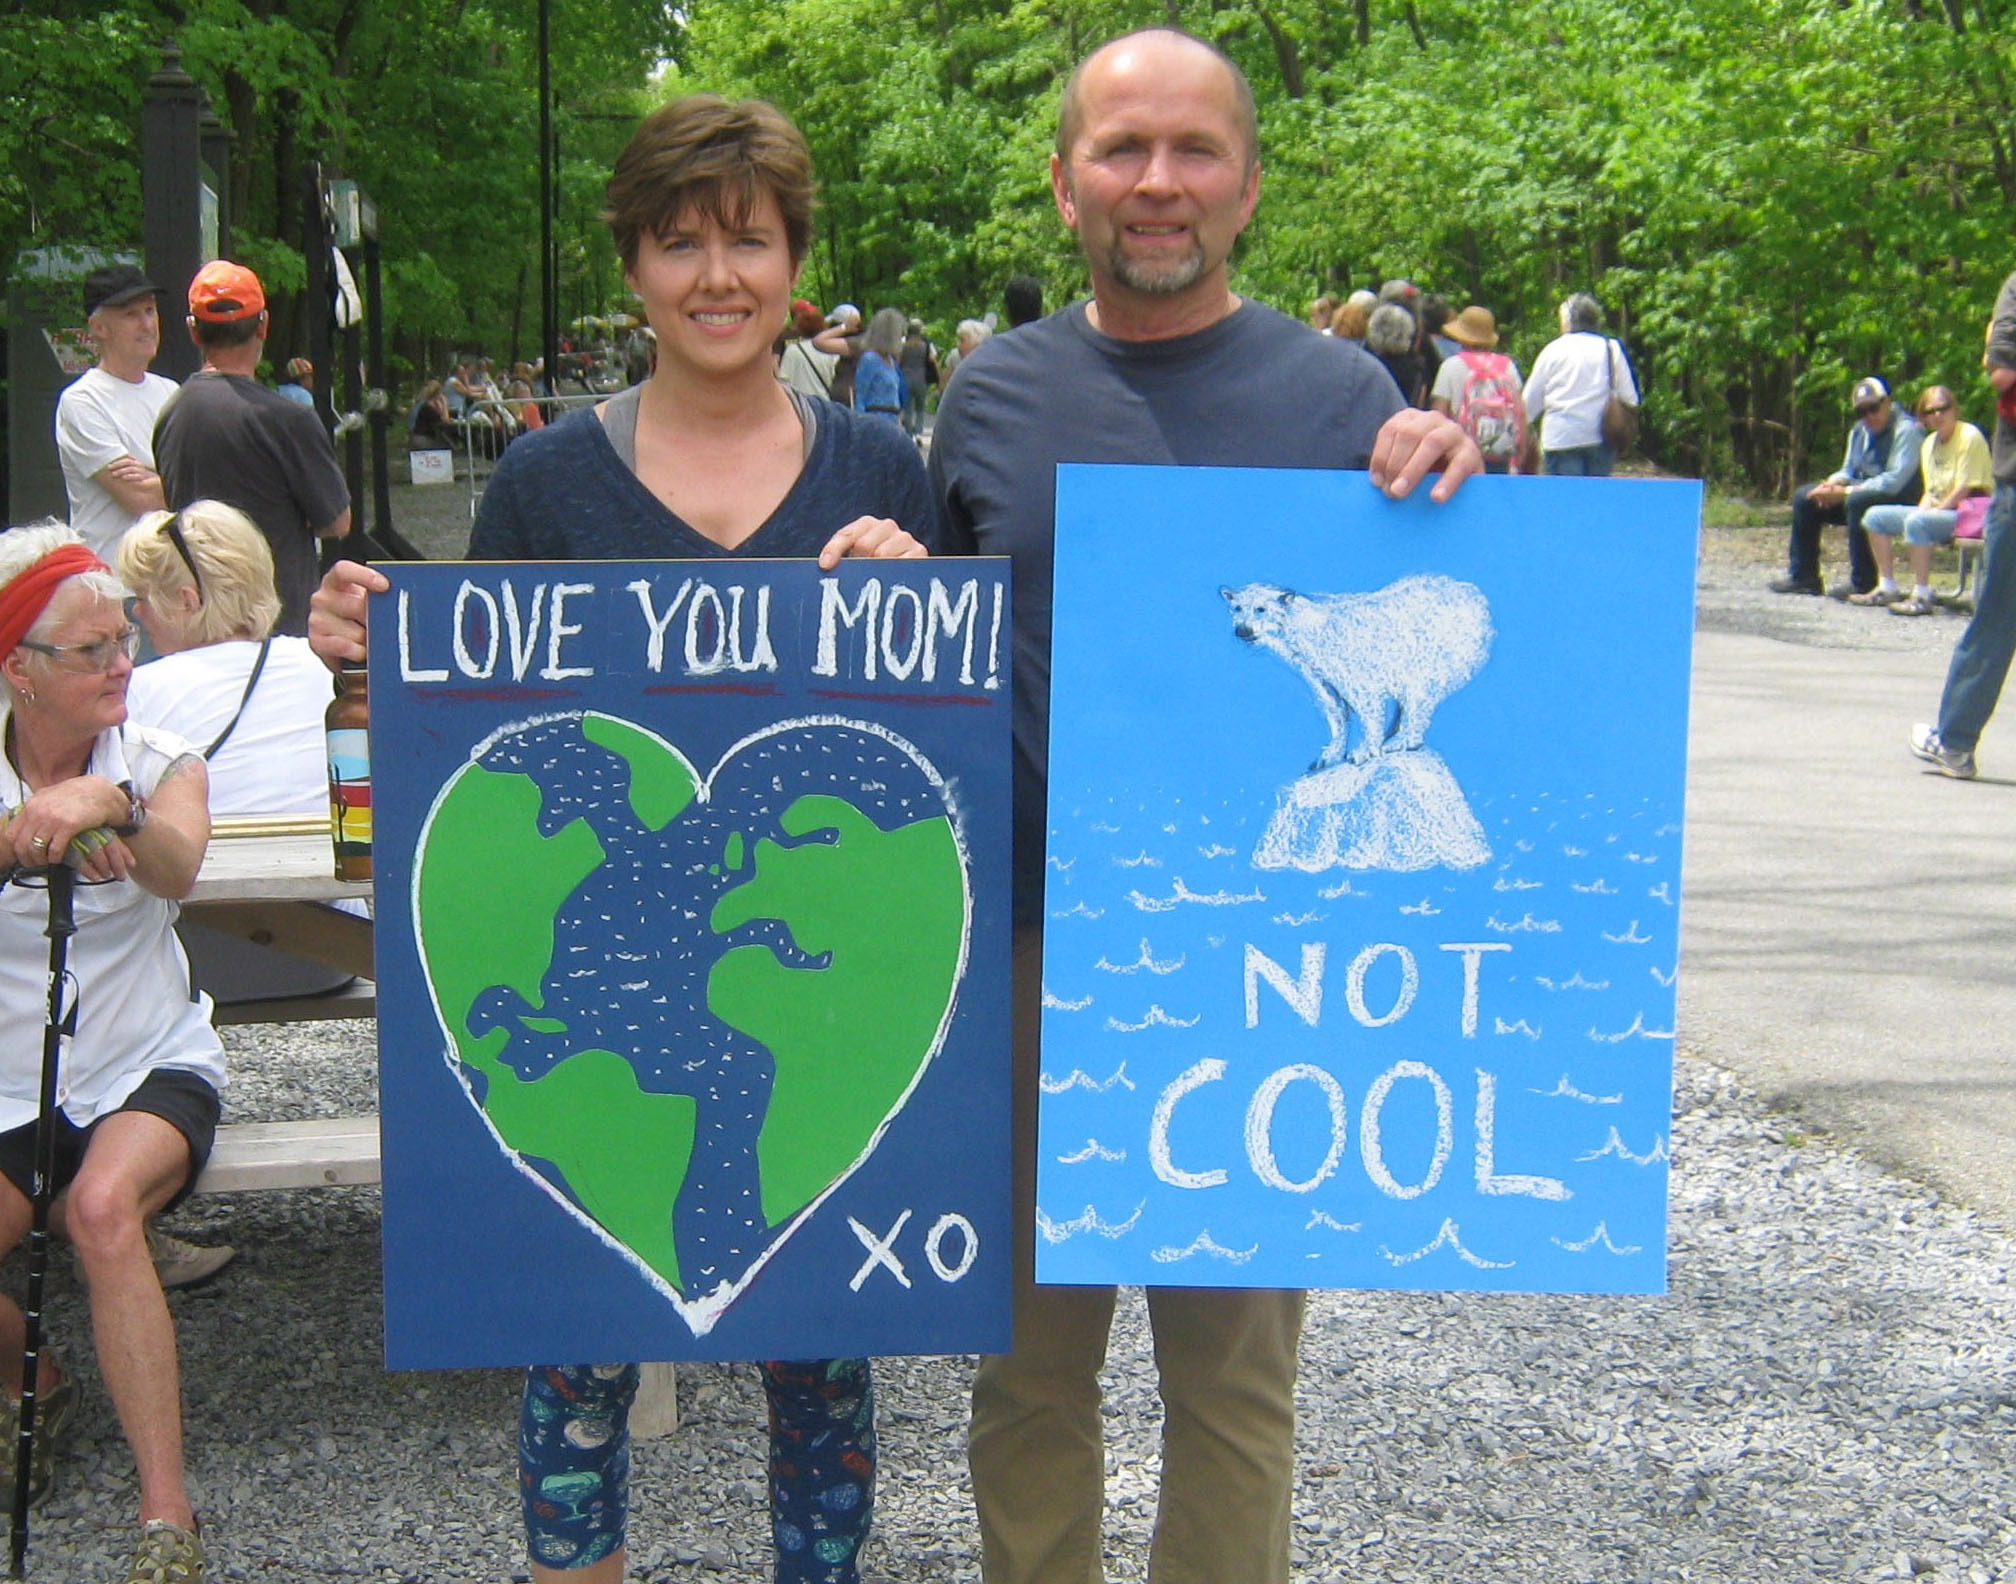 With hand-drawn signs, at the People's Climate March on the Walkway over the Hudson.